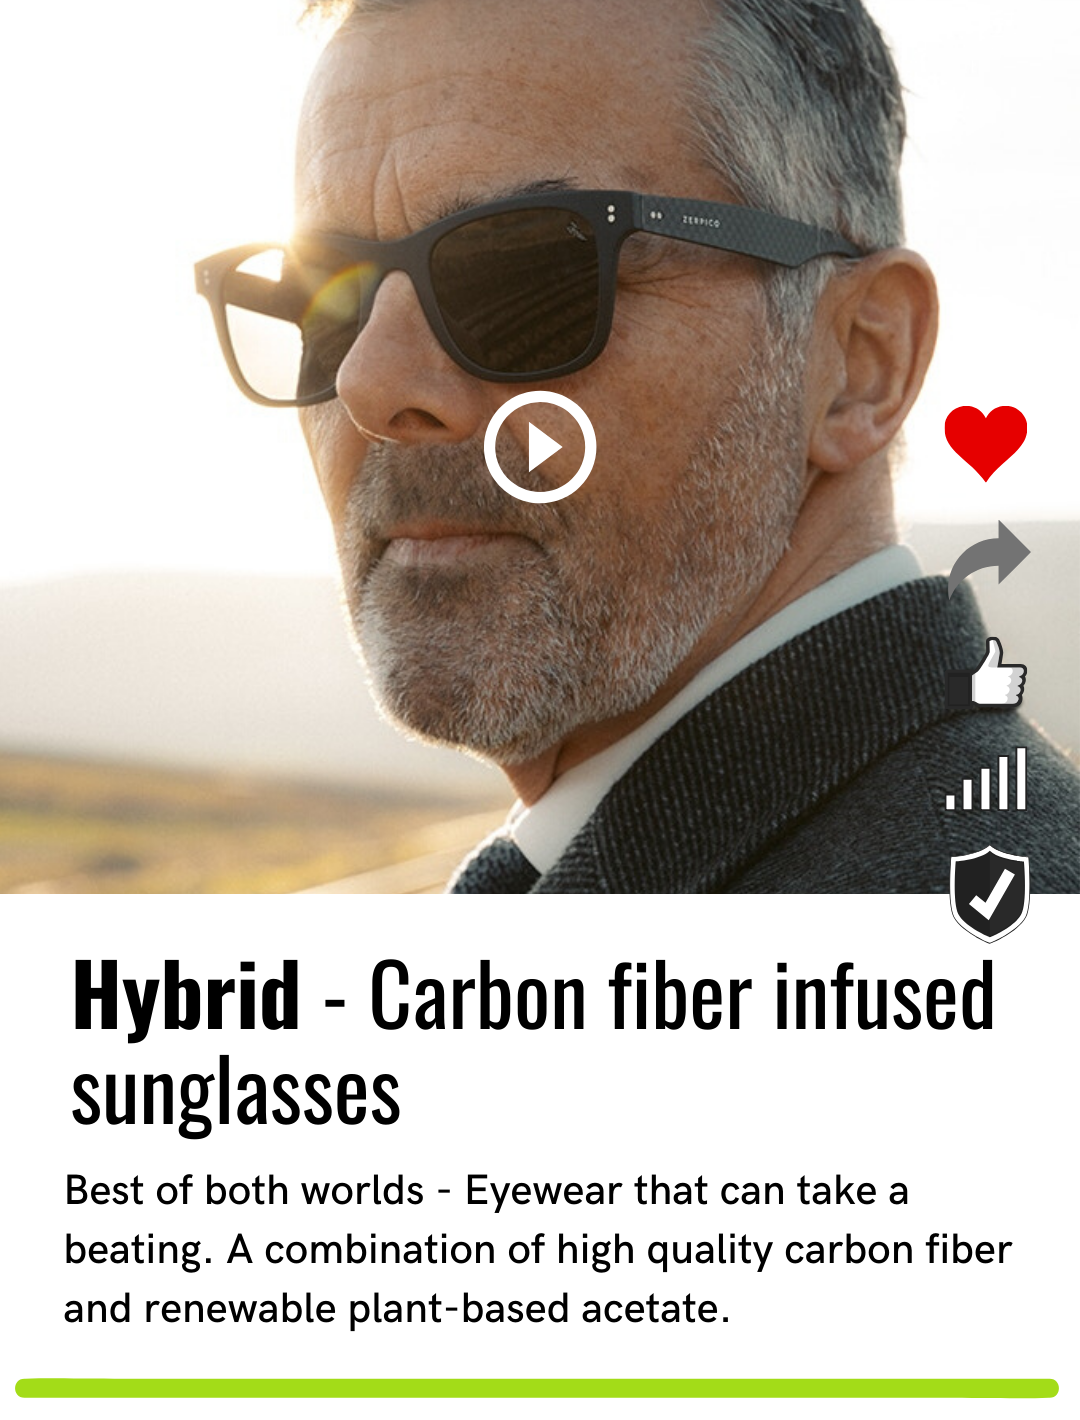 Hybrid - Carbon fiber infused sunglasses